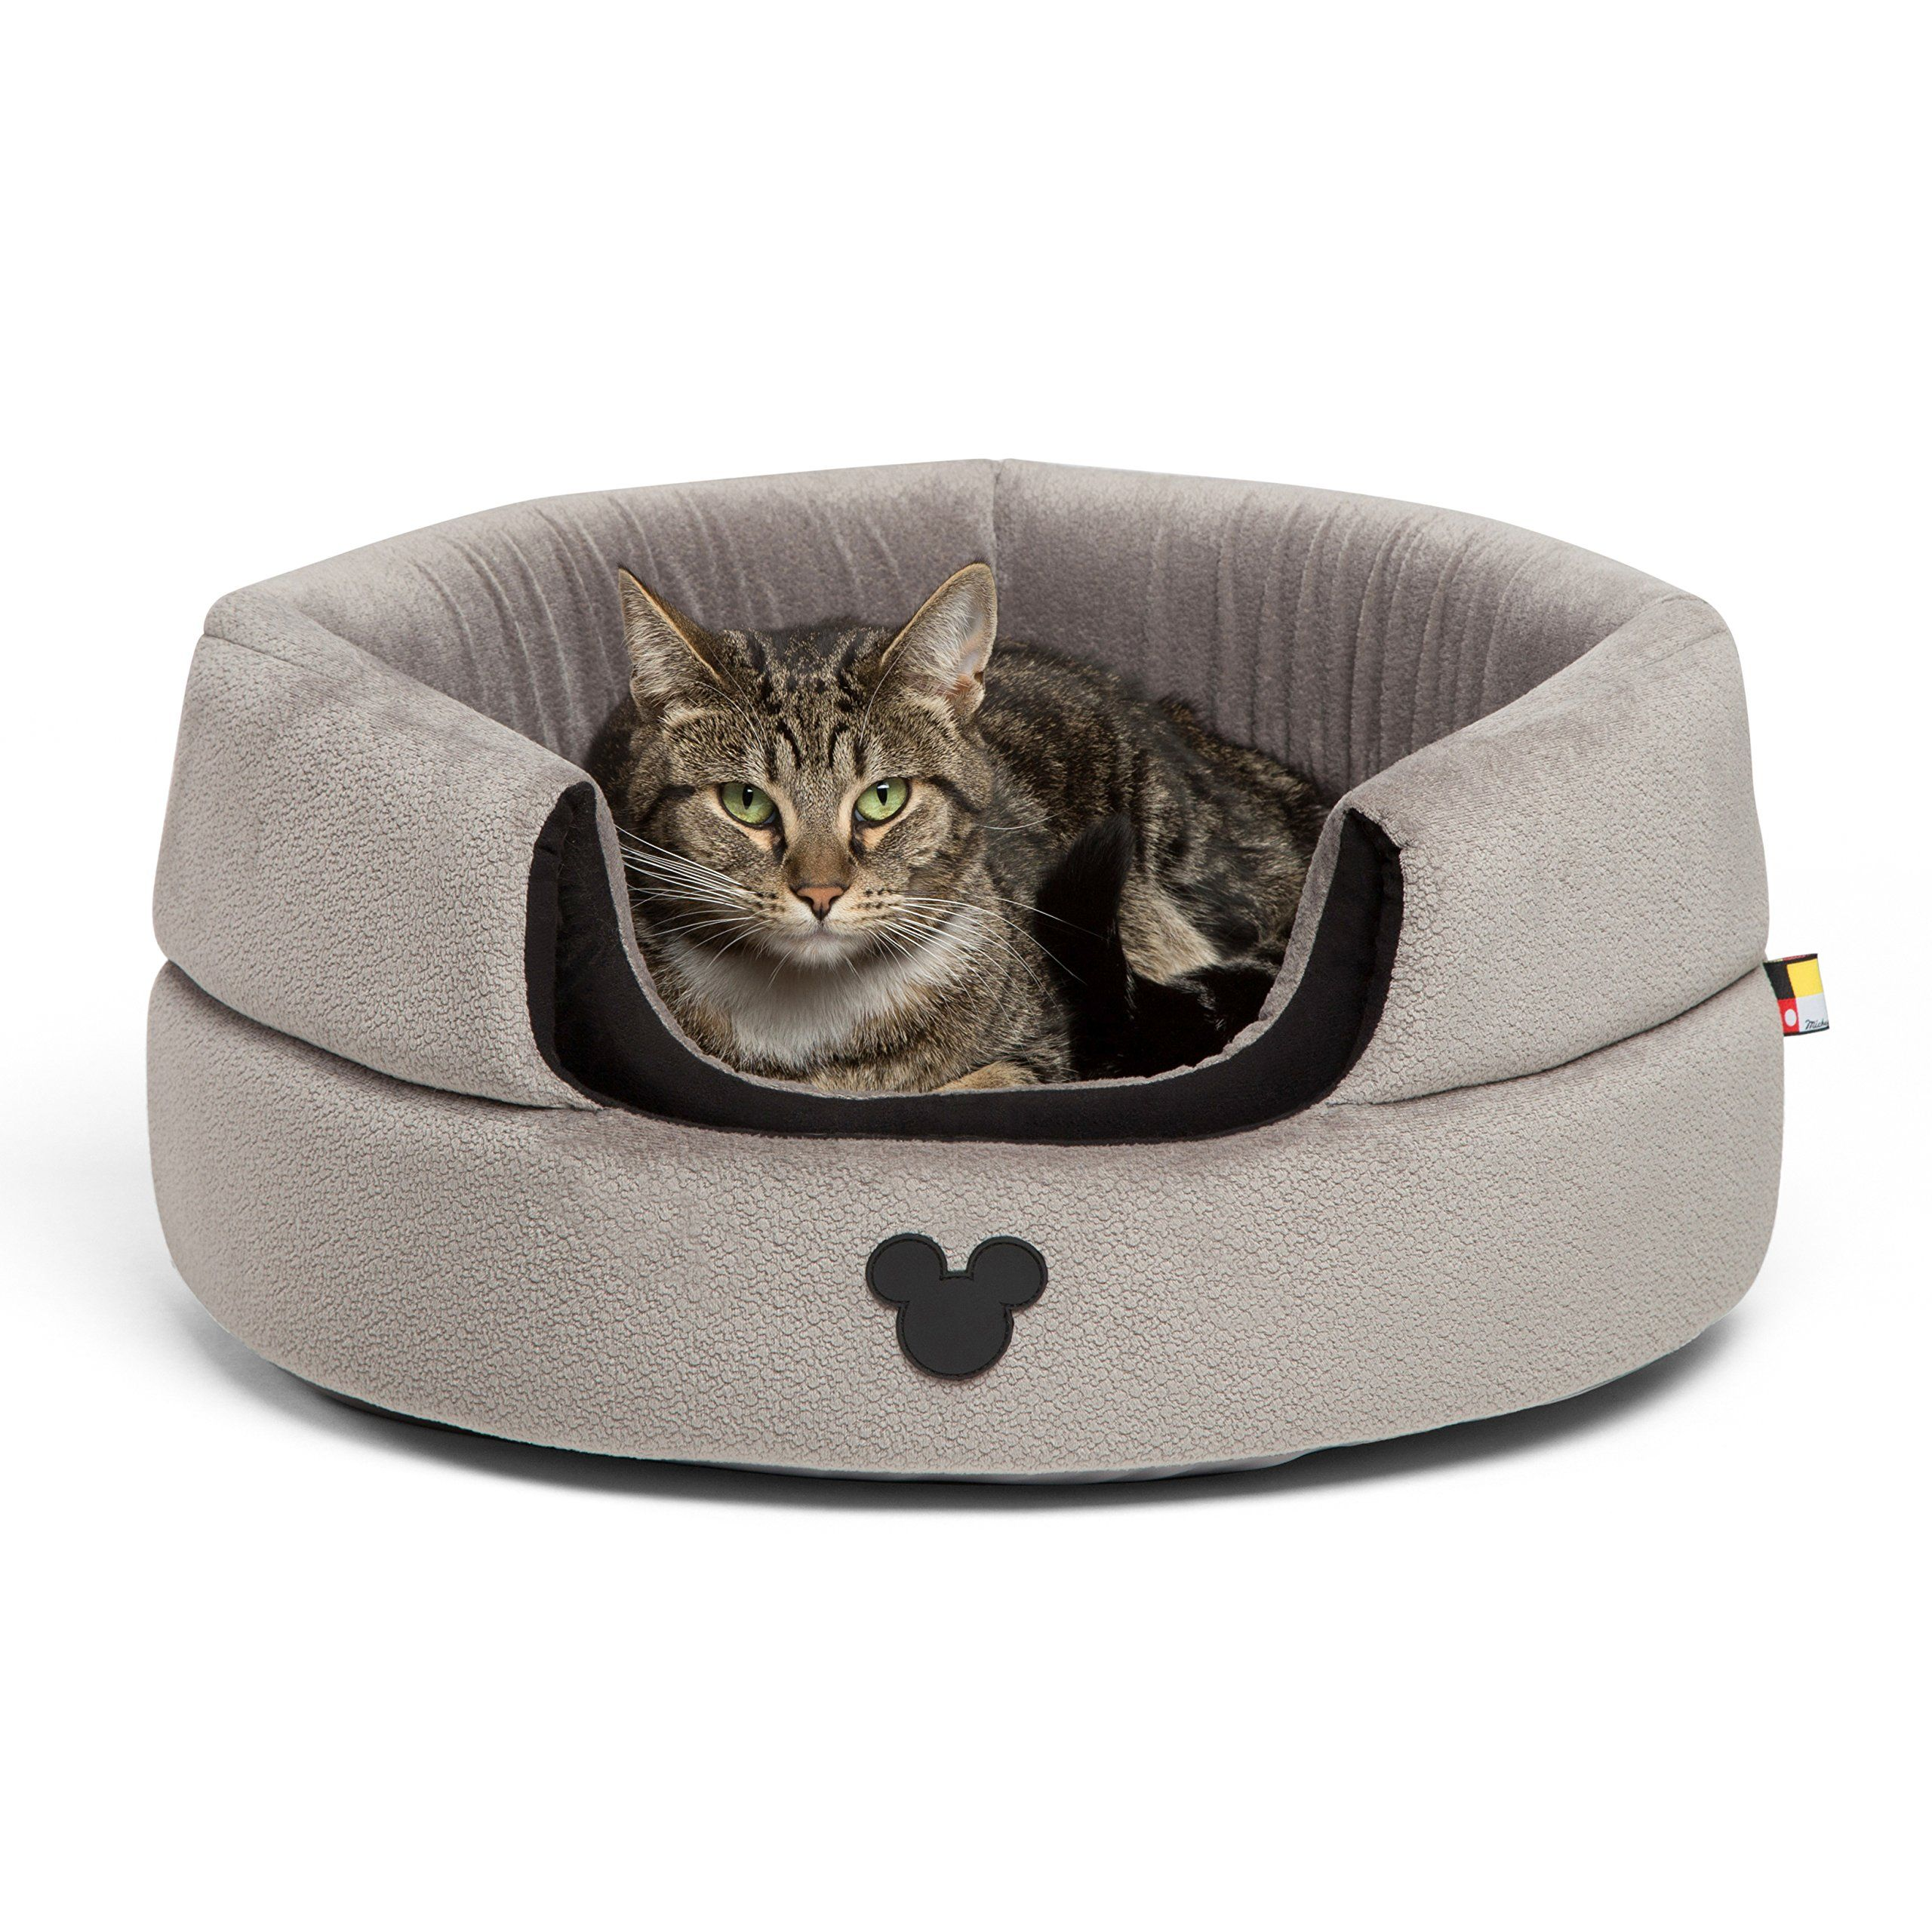 Disney Mickey Mouse 2in1 Honeycomb Hut Cuddler In Mickey Bobble Grey Jumbo Dog Bed Cat Bed Extra Information Could Jumbo Dog Bed Dog Bed Furniture Dog Bed